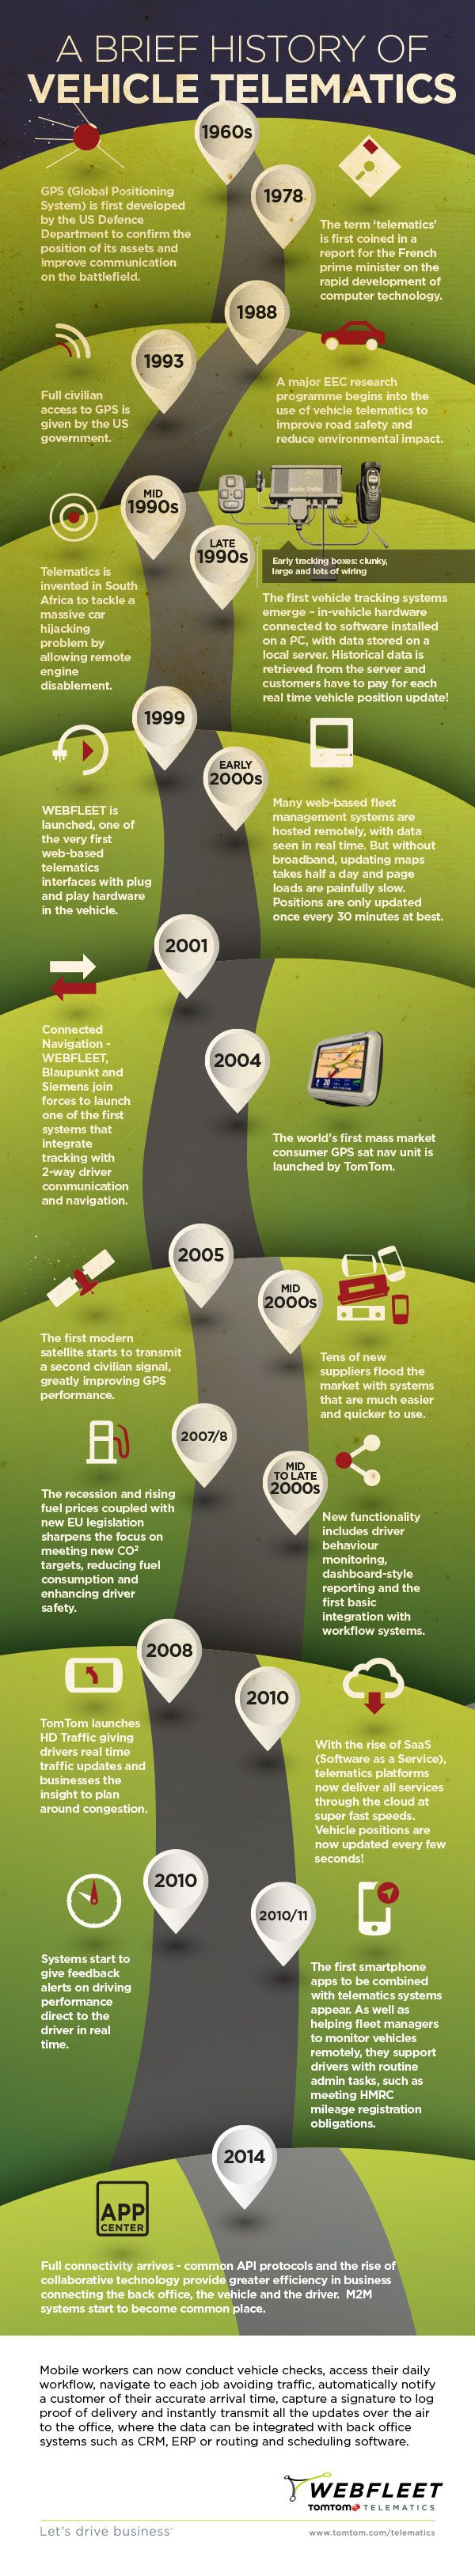 A history of telematics infographic from http://blog.business.tomtom.com